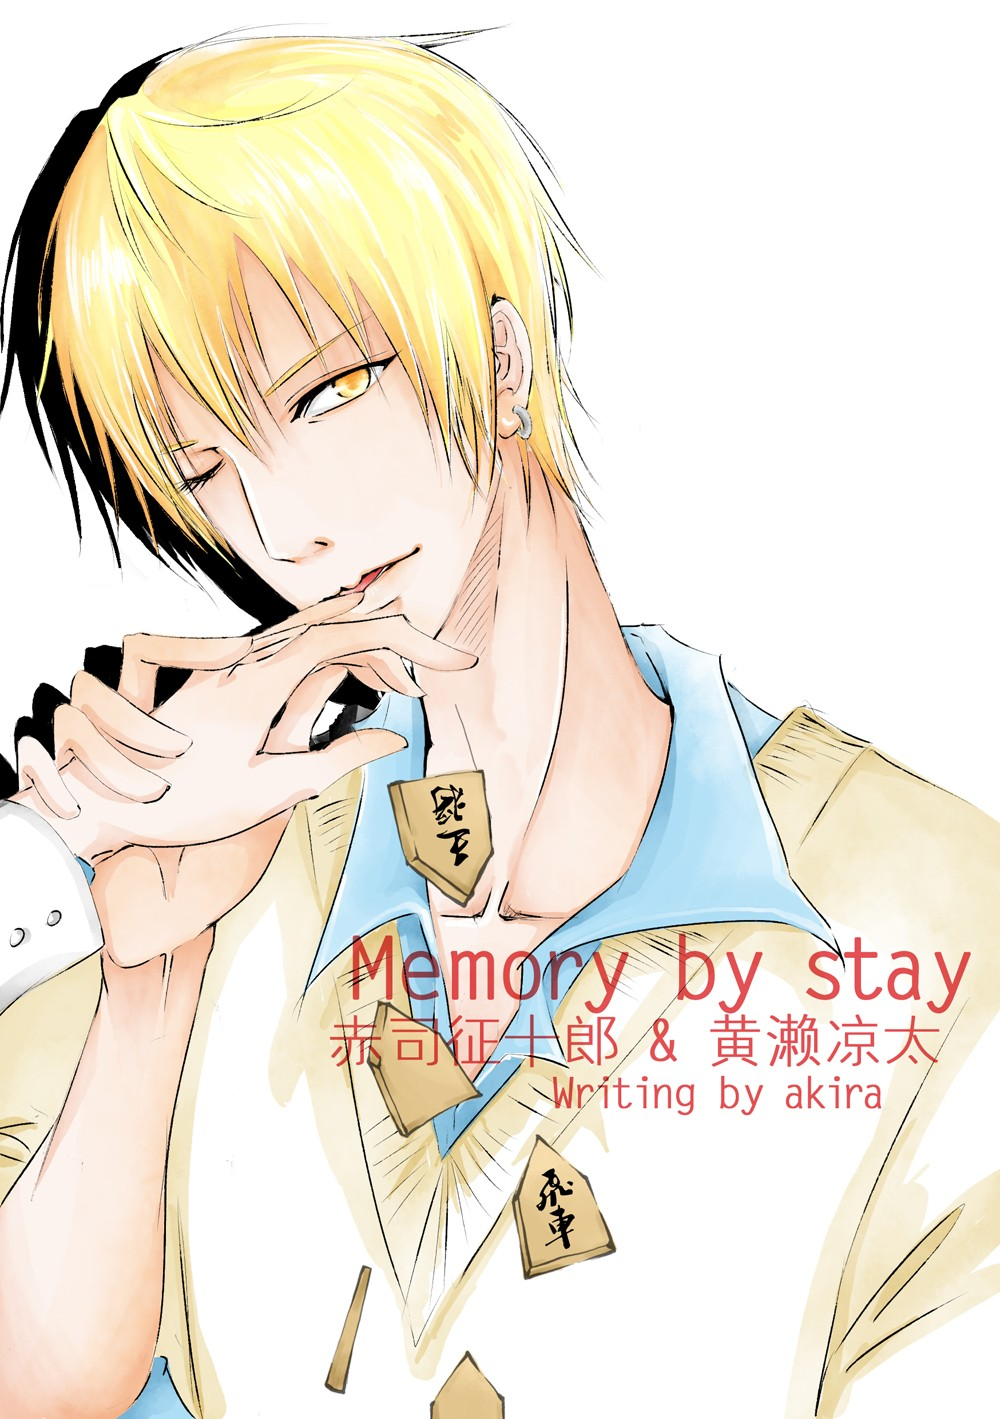 Memory by stay